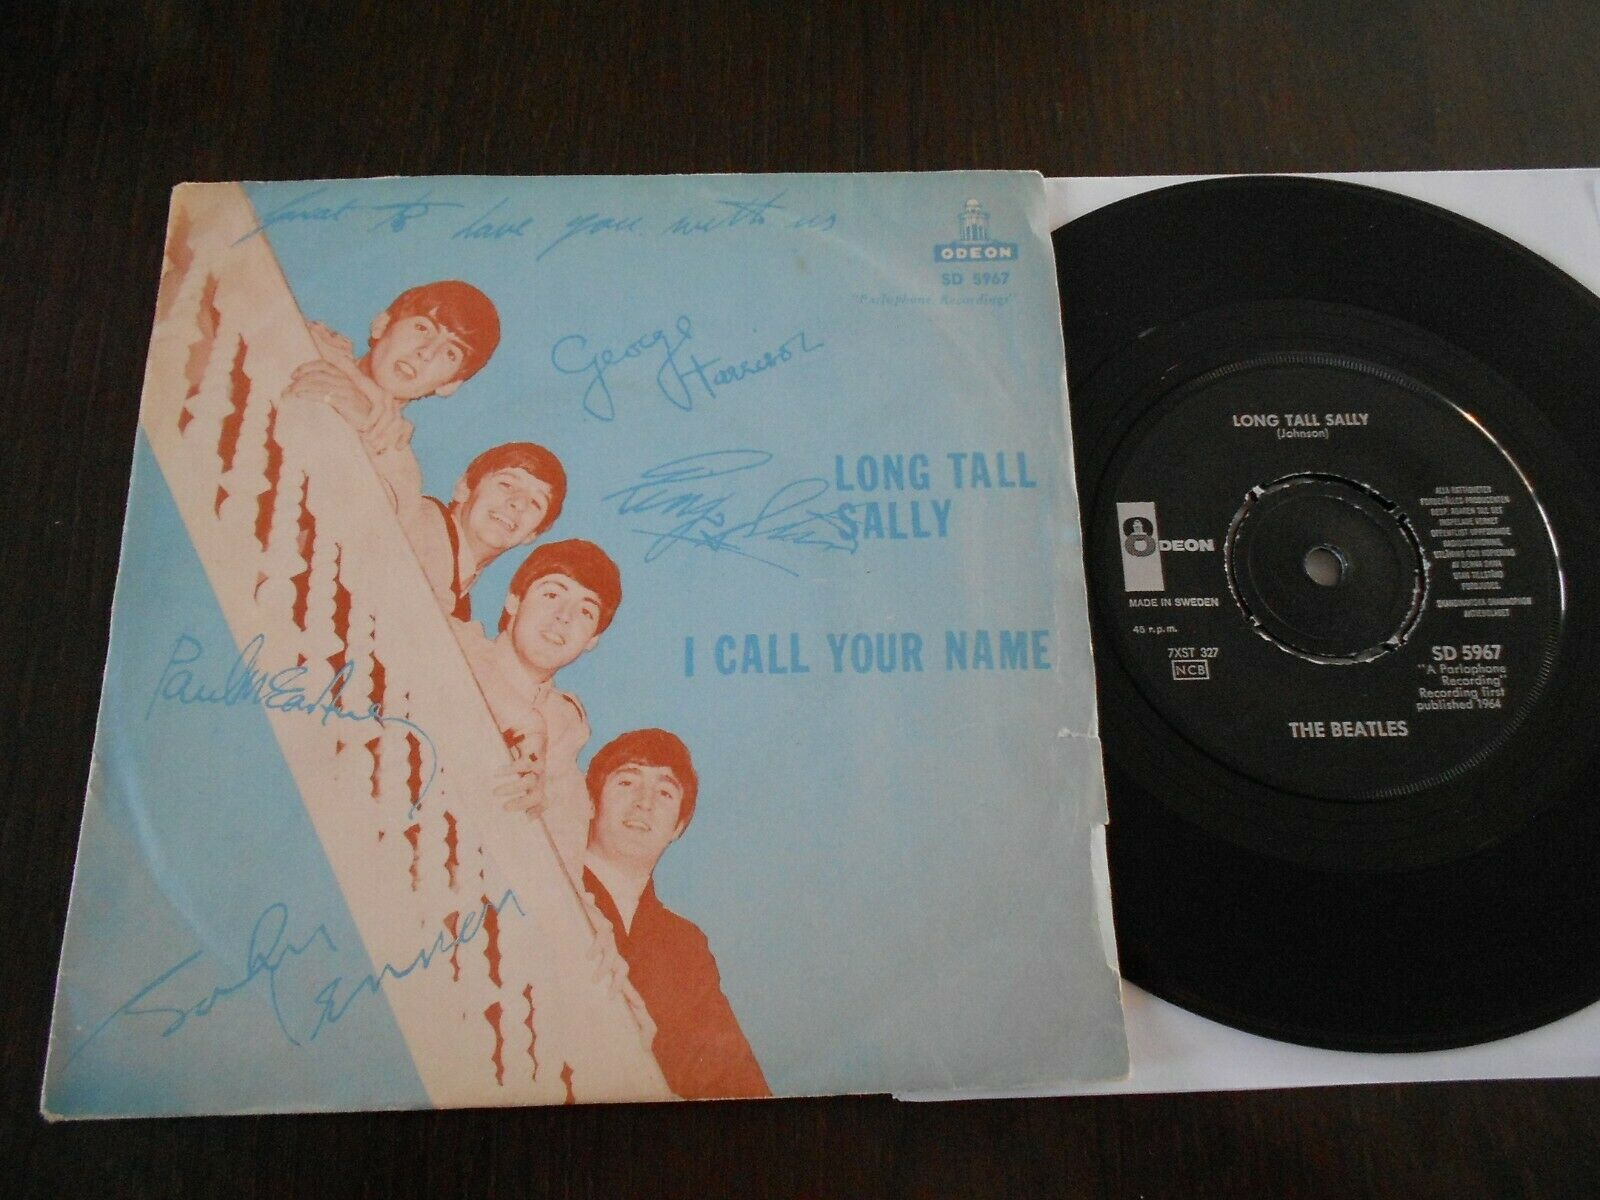 THE BEATLES SP LONG TALL SALLY SWEDEN SD 5967  COVER VERY TOUGH SWEDISH